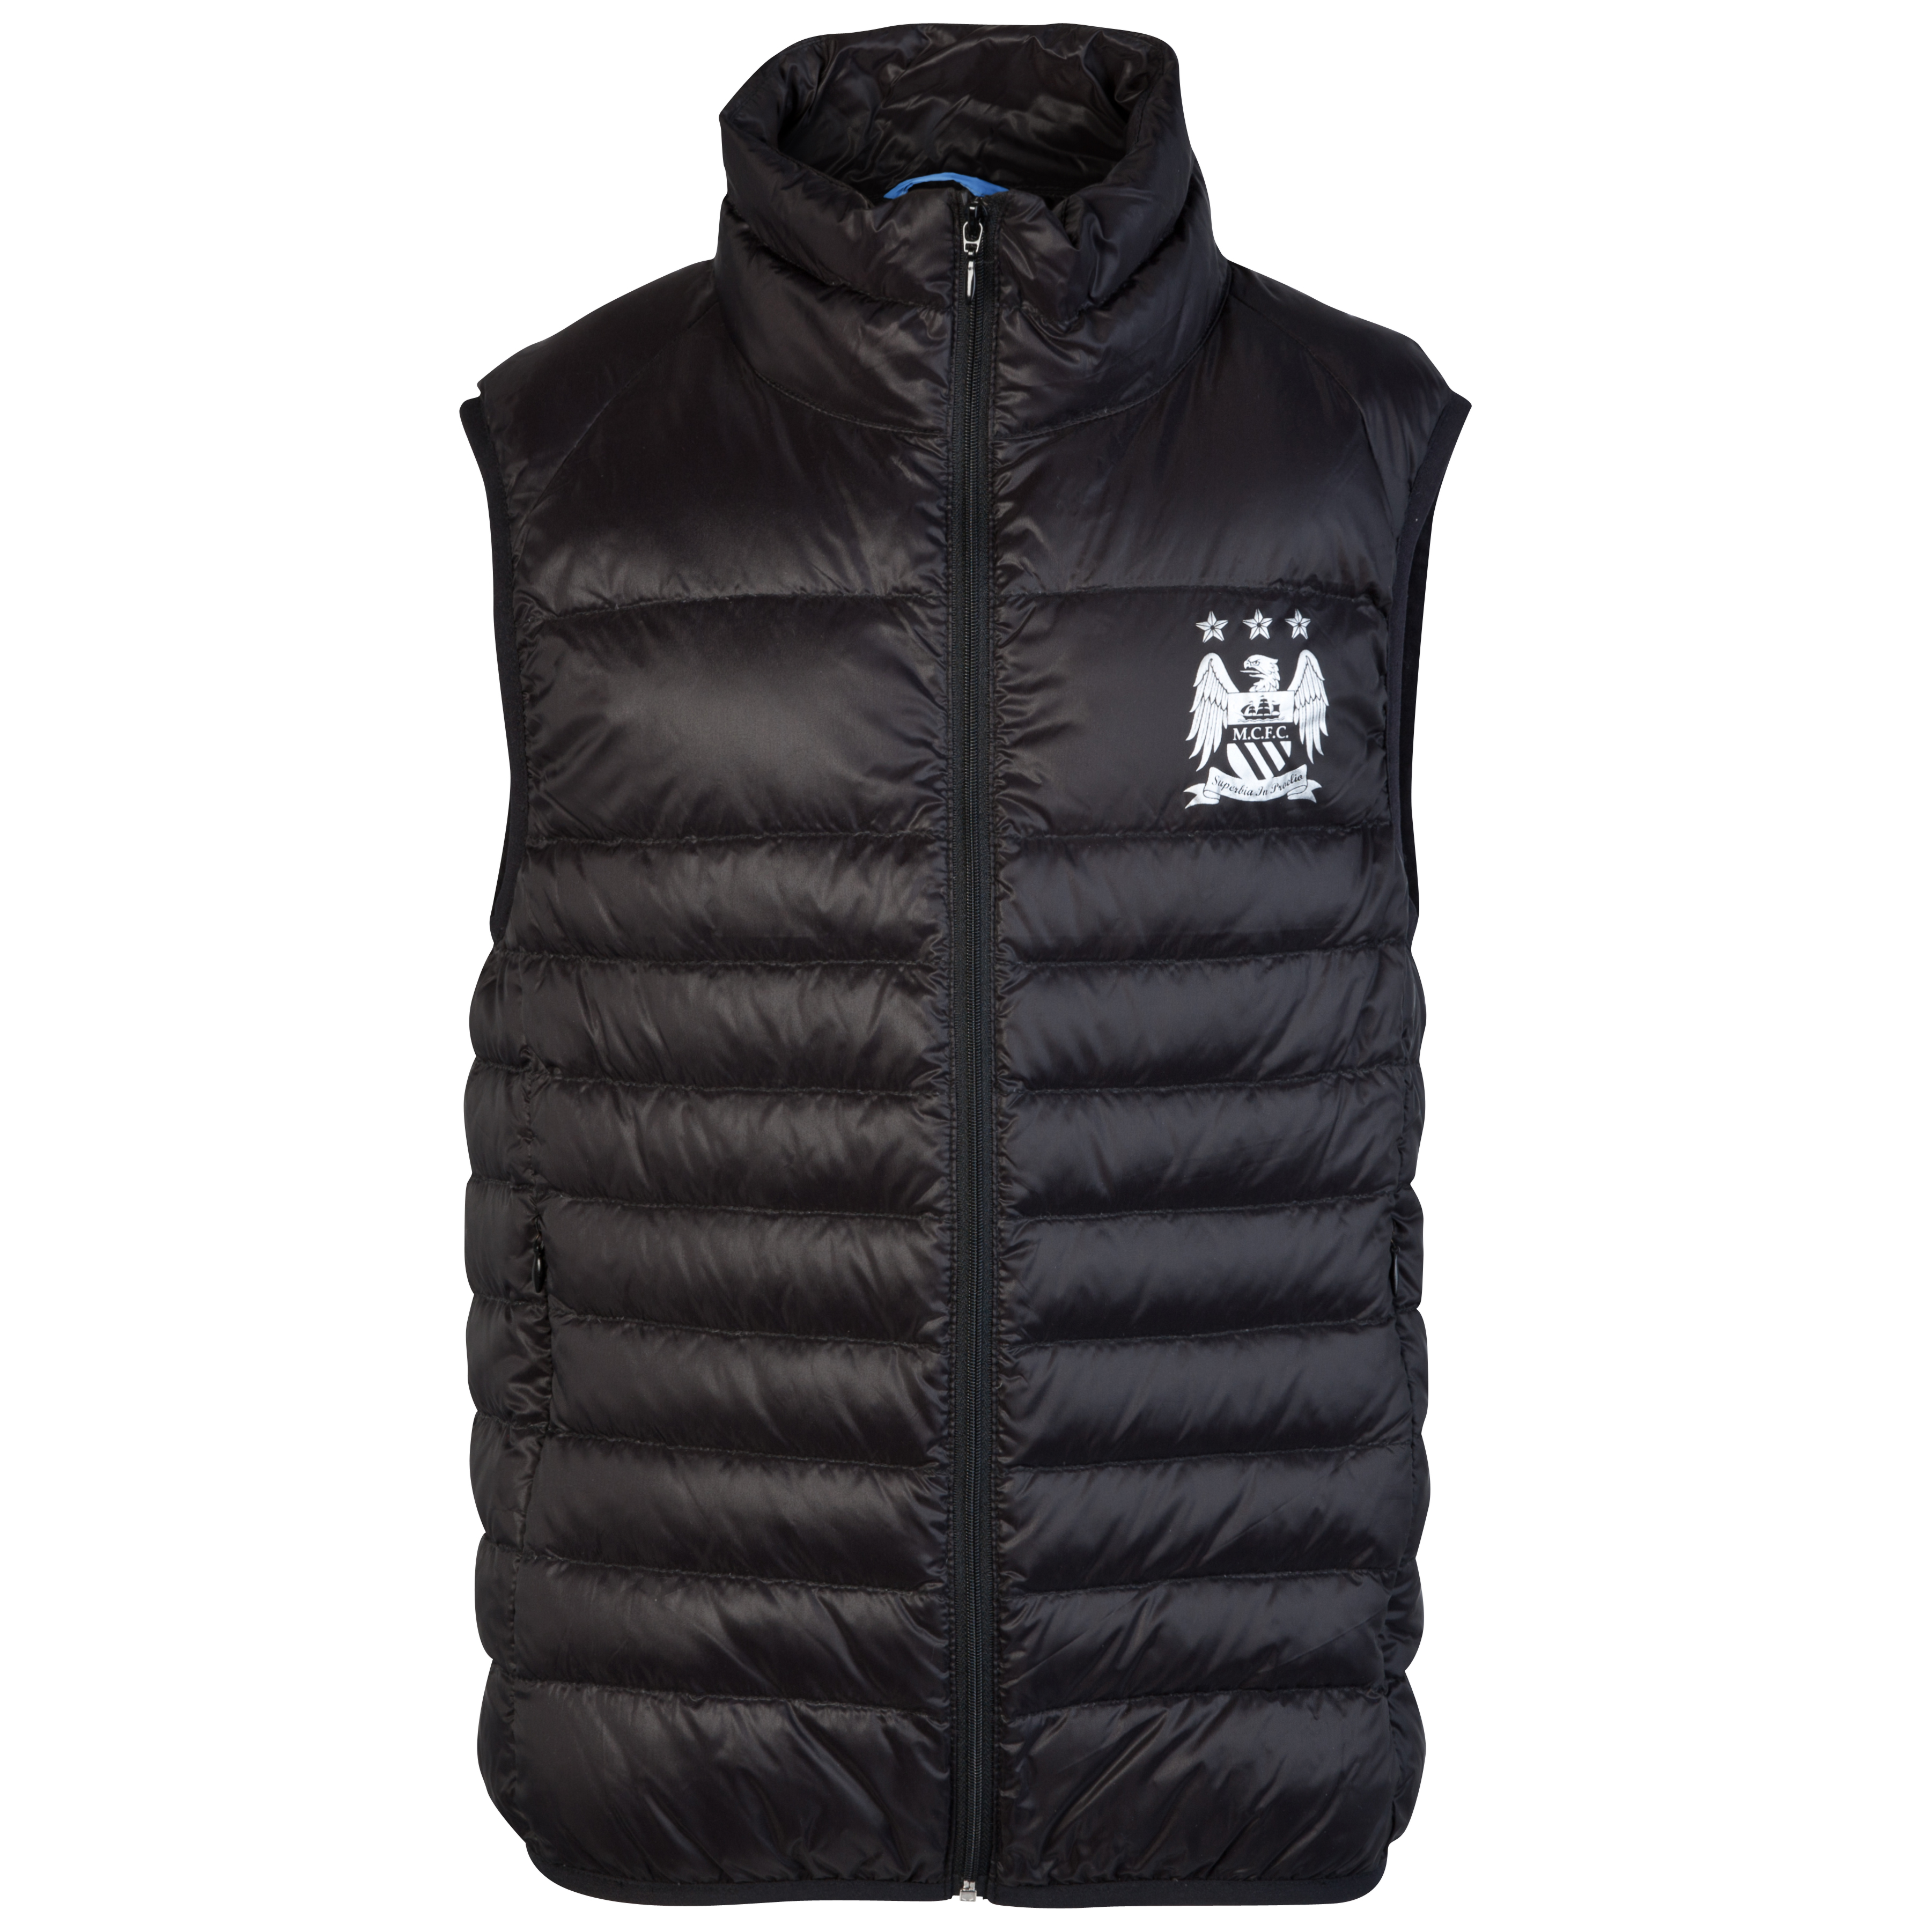 Manchester City Performance Ravine Gilet - Black - Older Boys